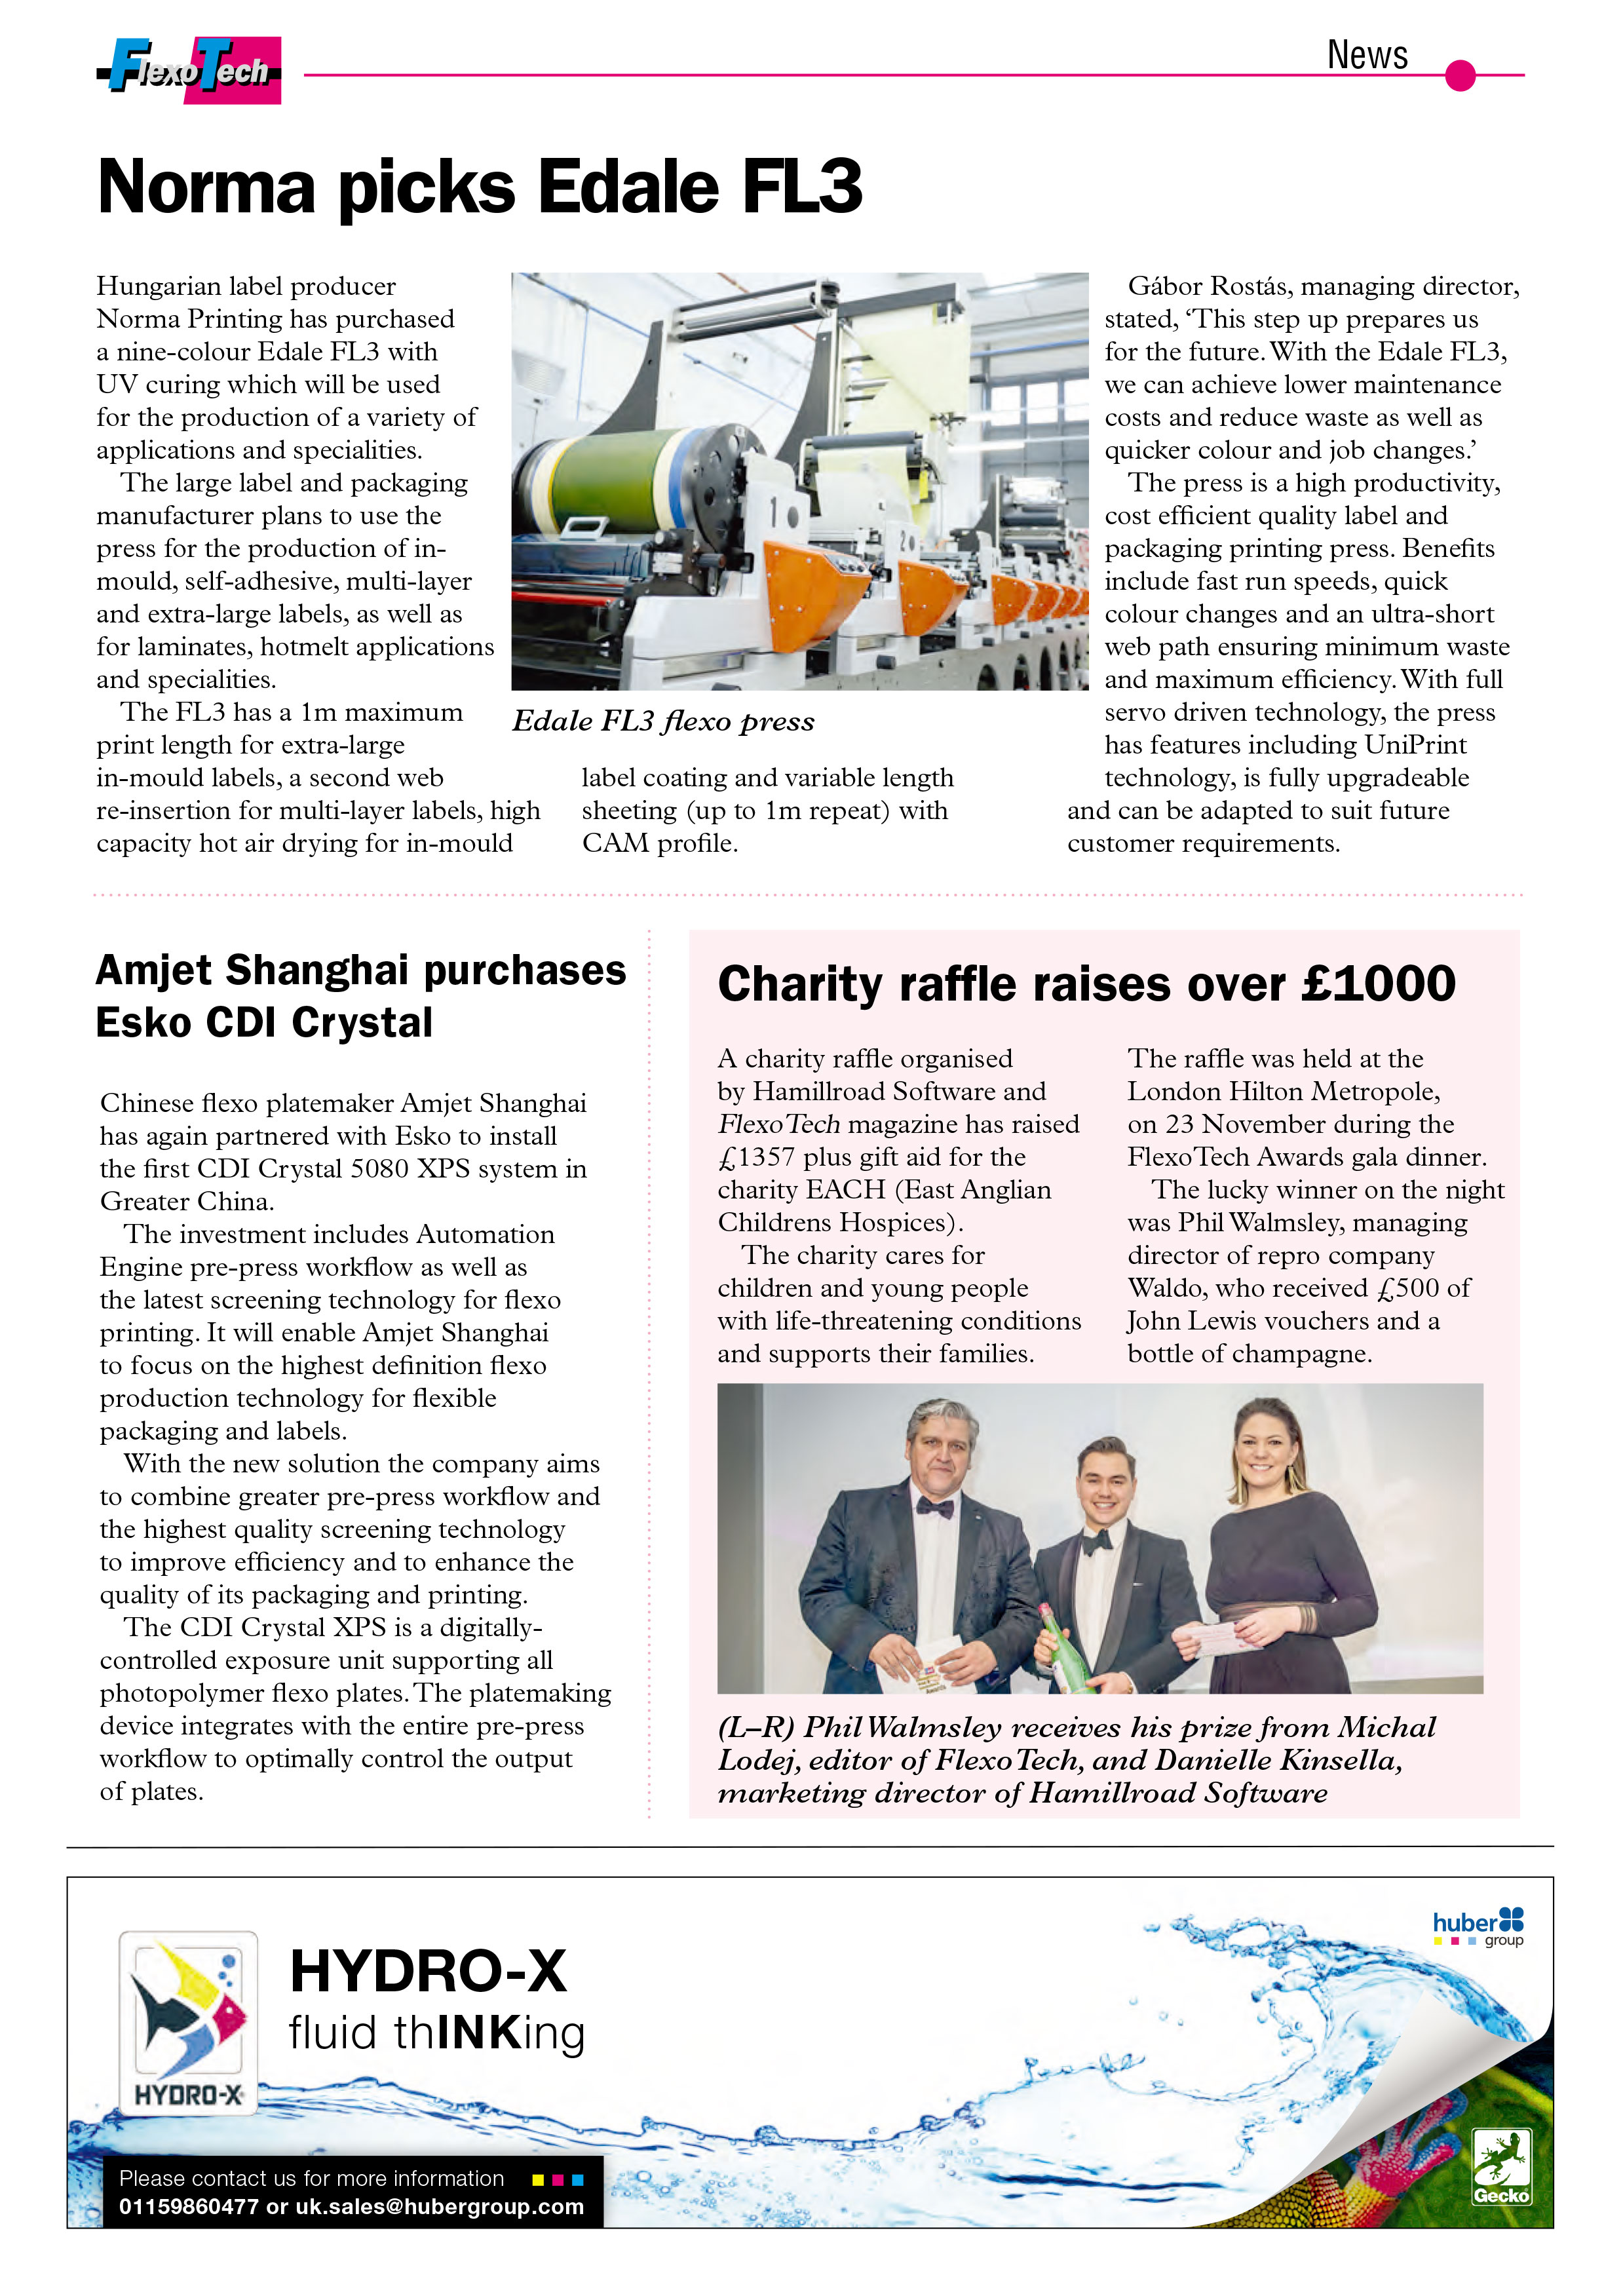 hamillroad software - charity raffle raises over £1000 for EACH East Anglias Childrens Hospice